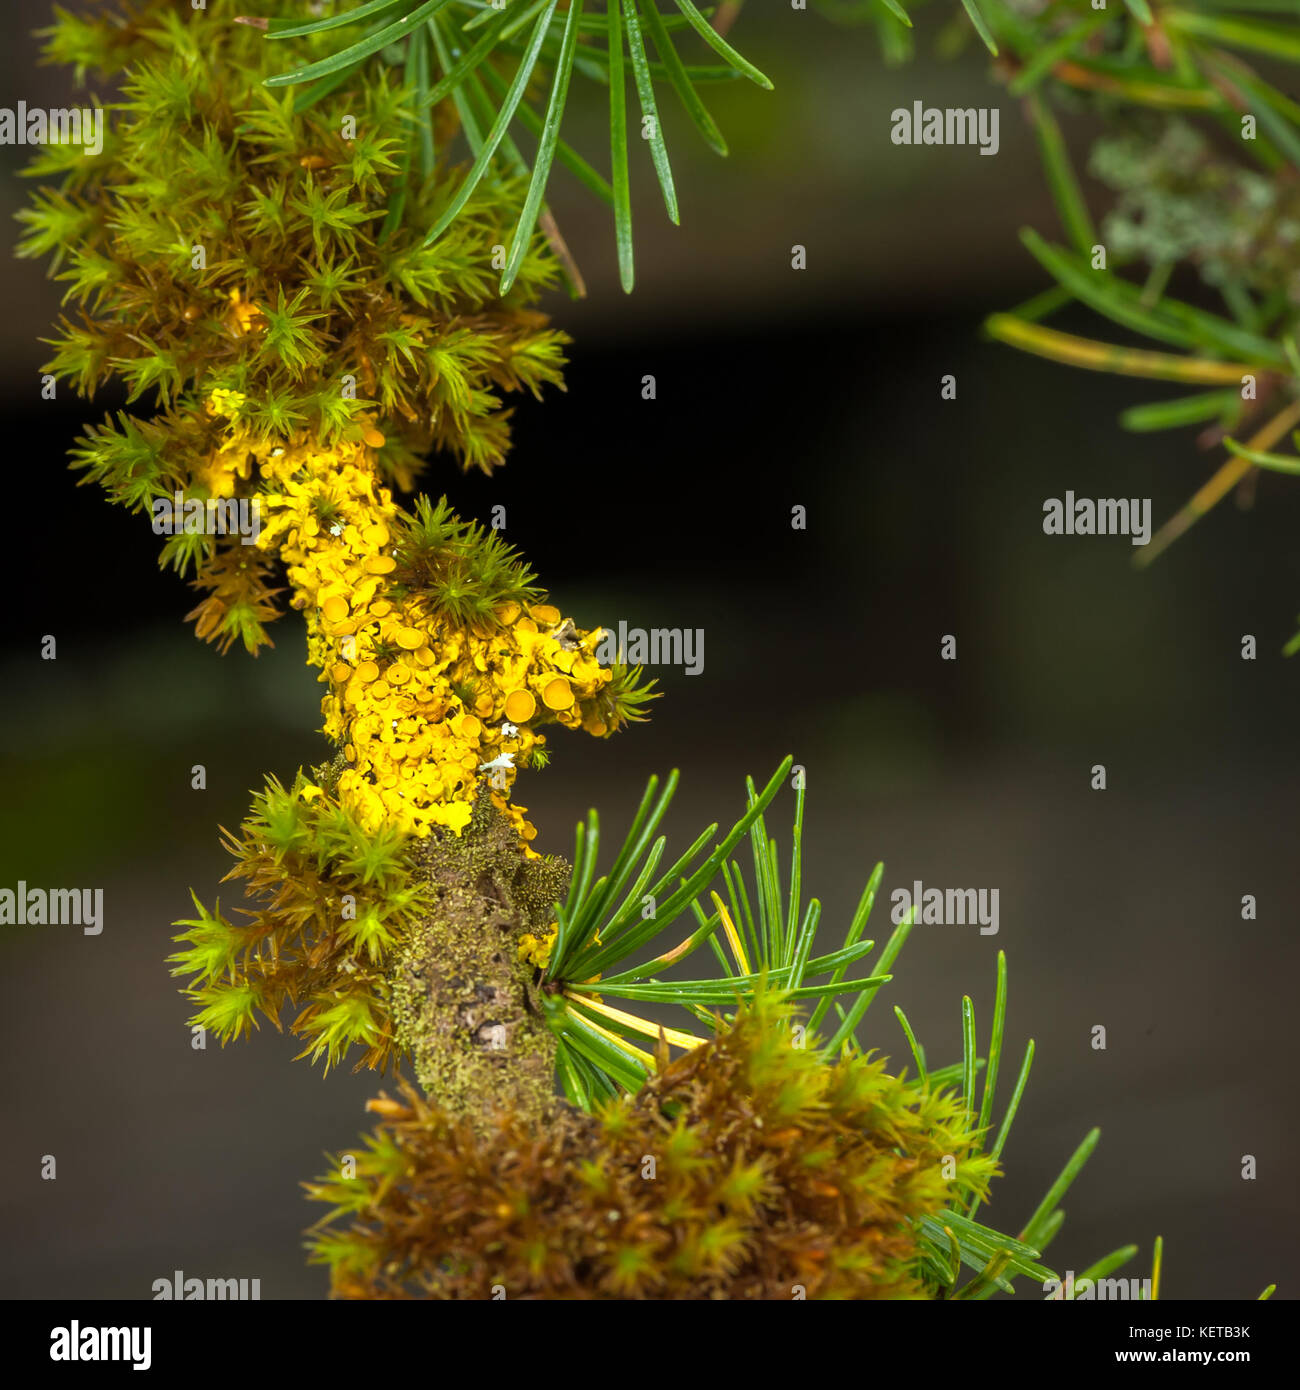 Closeup of lichen and moss growing on a larch twig - Stock Image